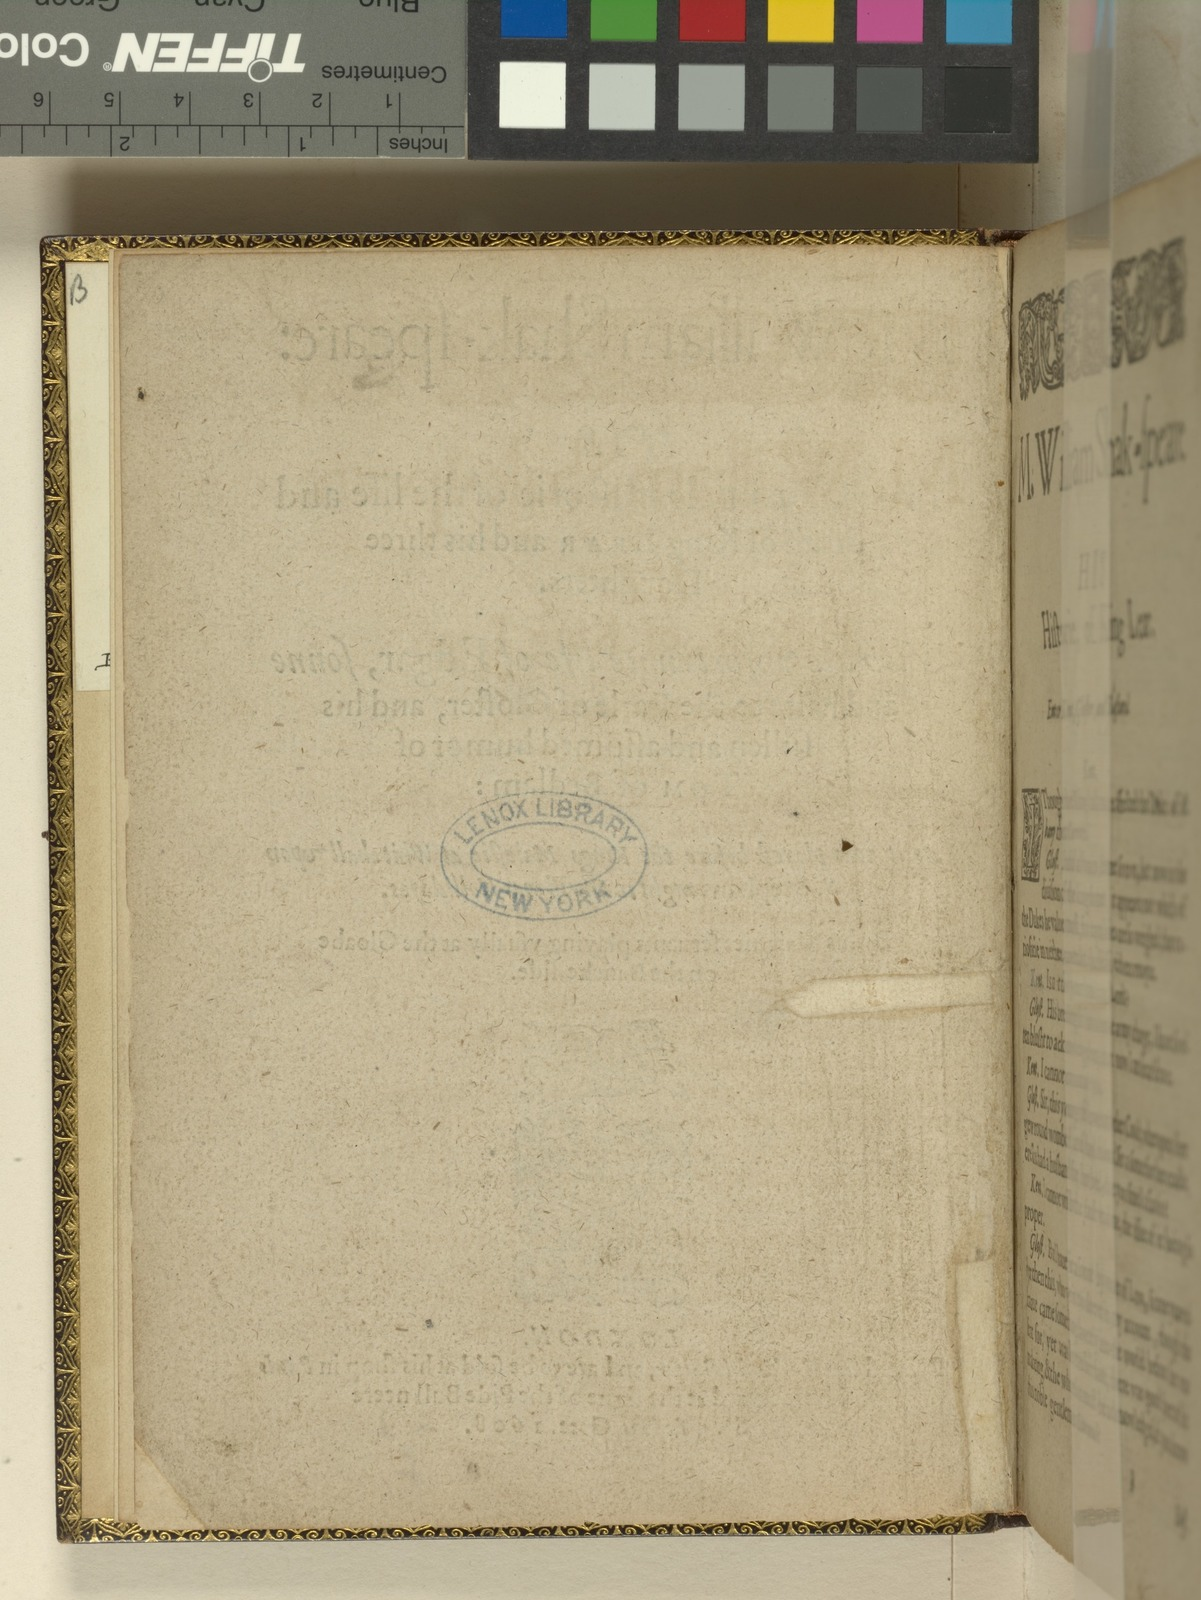 Verso of title page